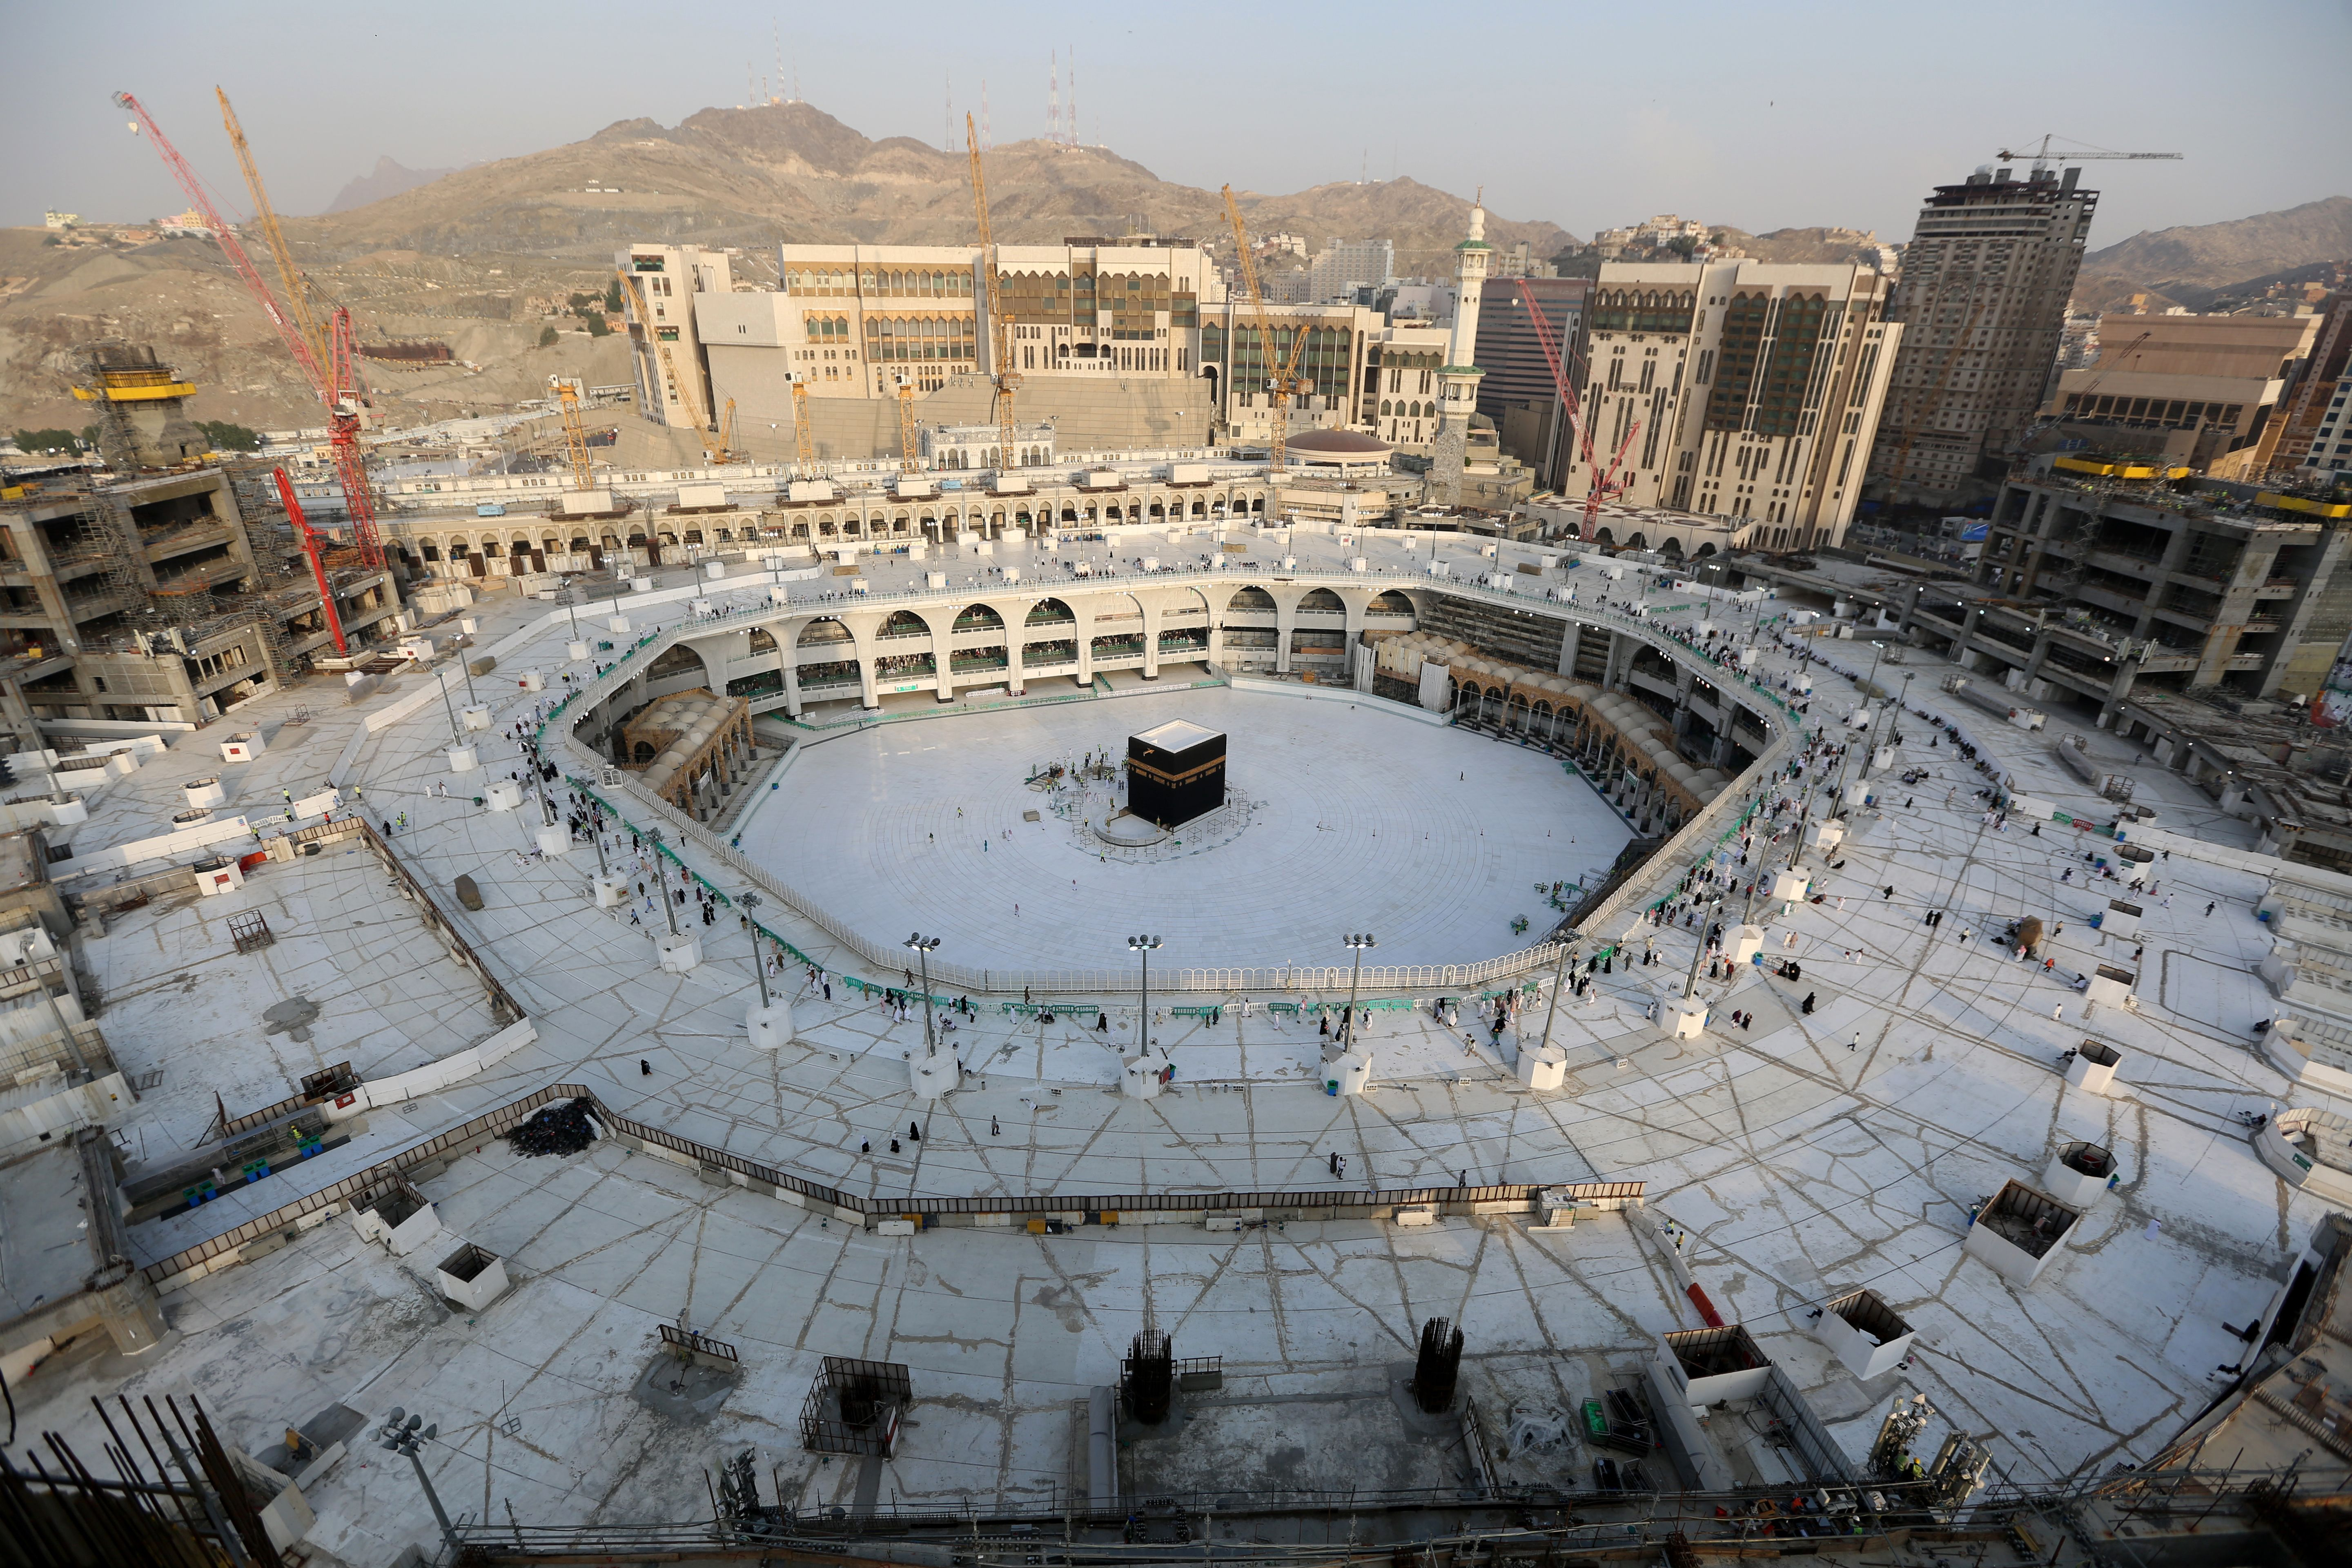 A photograph taken in Saudi Arabia on March 5, 2020, shows the white-tiled area surrounding the Kaaba, inside Mecca's Grand Mosque.